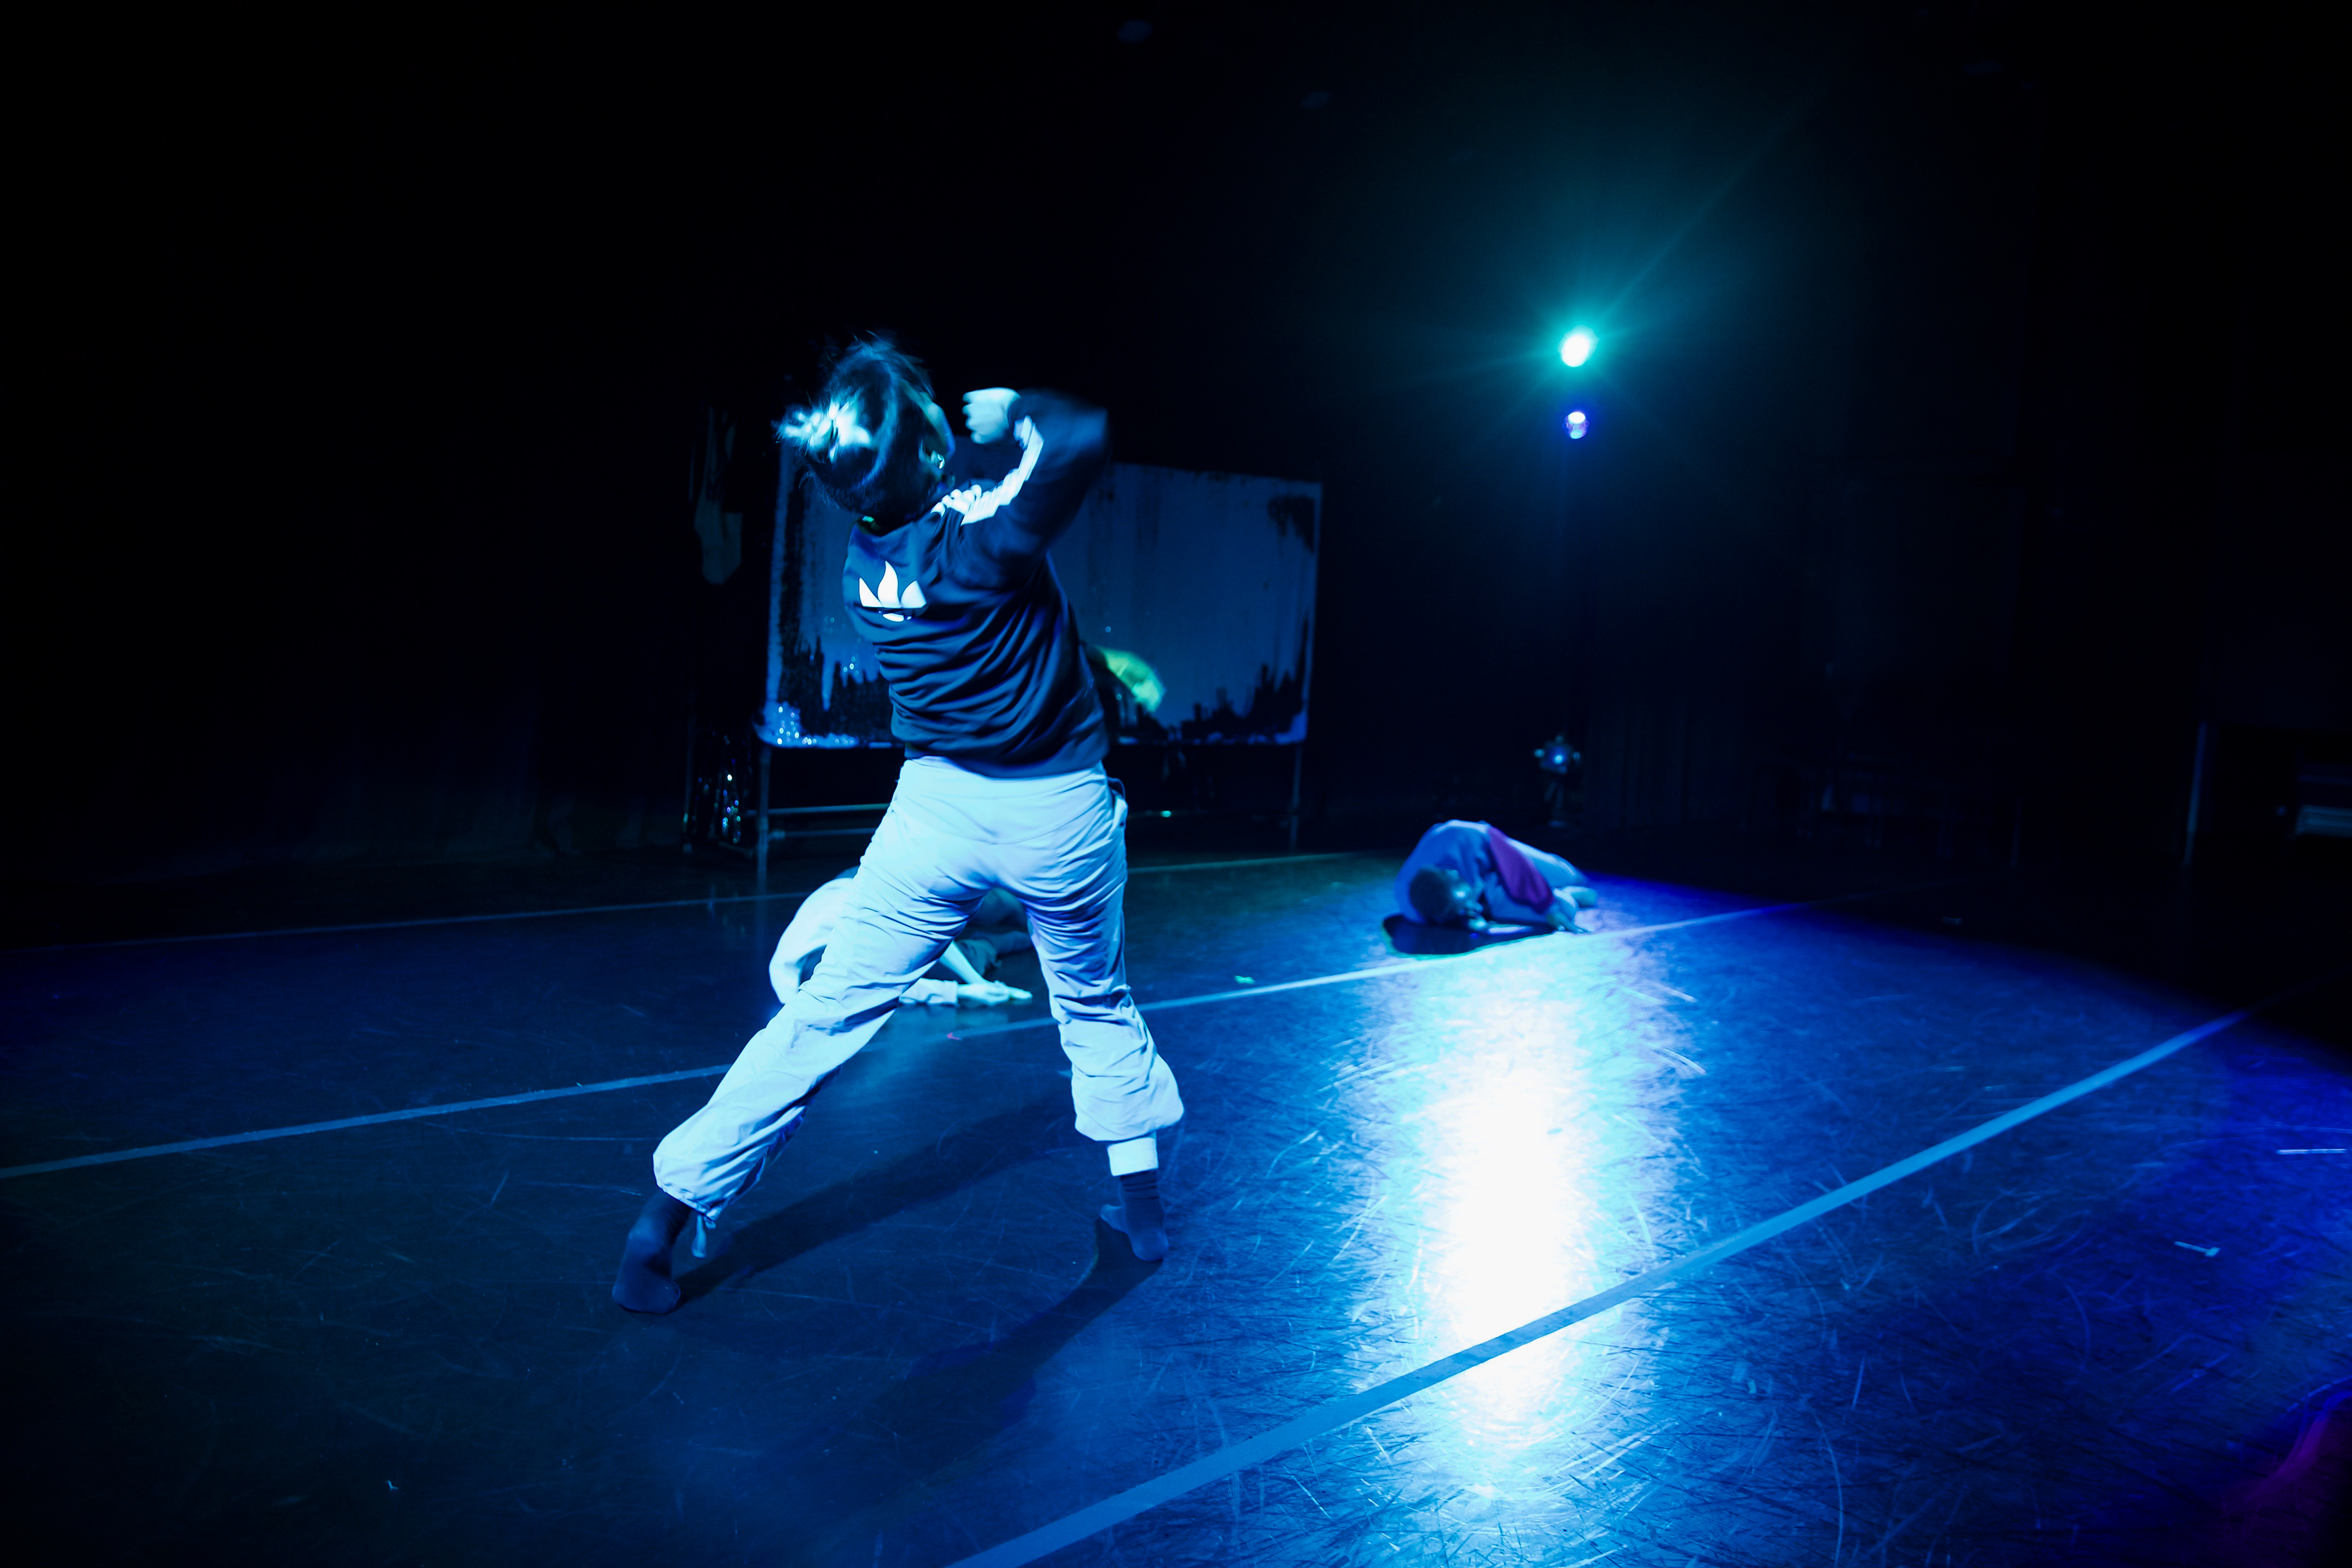 A person performing dance on stage.